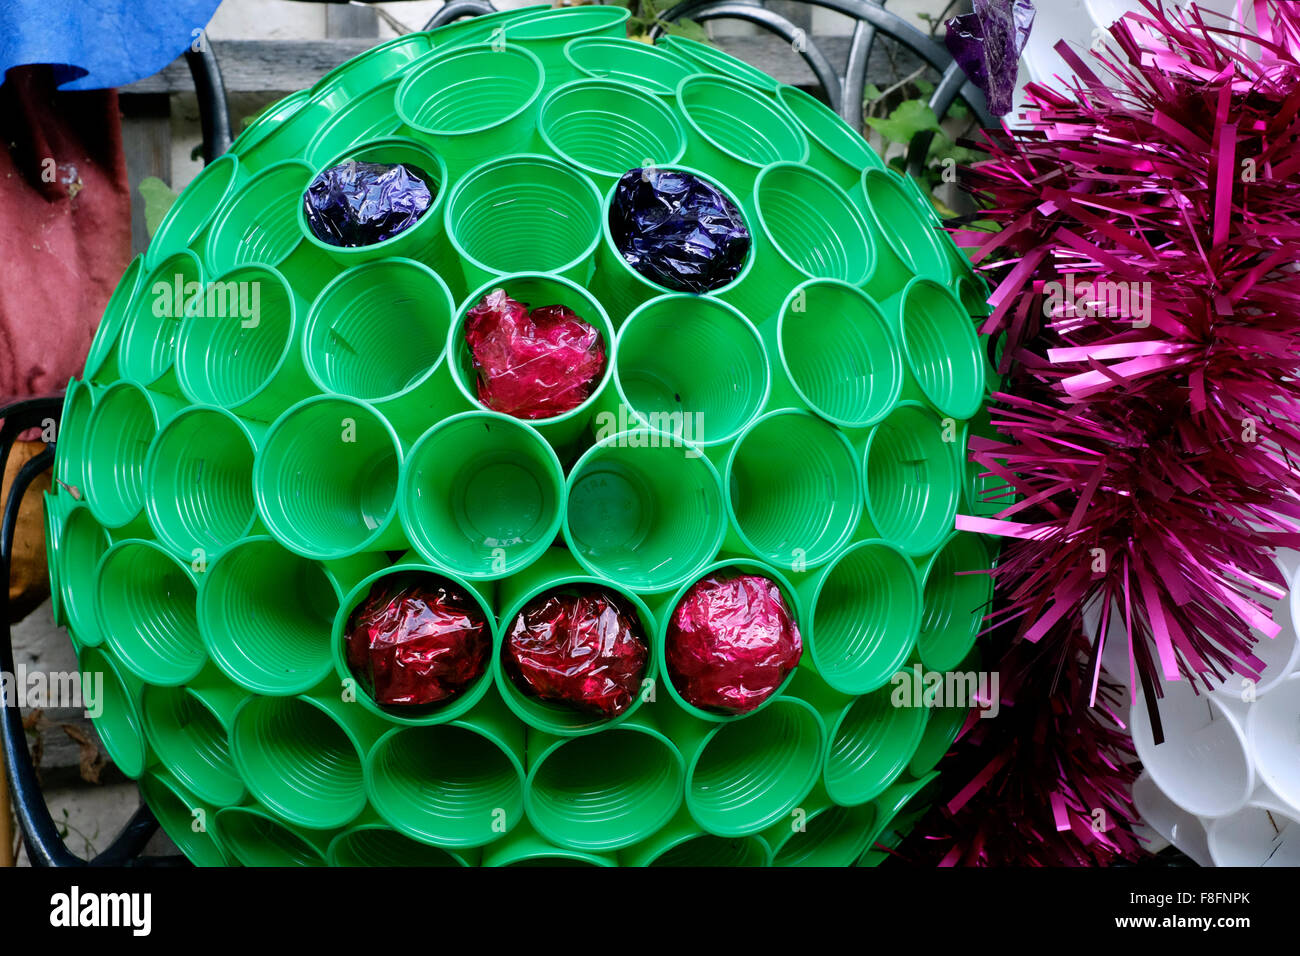 Decorating Plastic Tumblers Christmas Garden Brussel Sprout Decoration Made From Plastic Cups